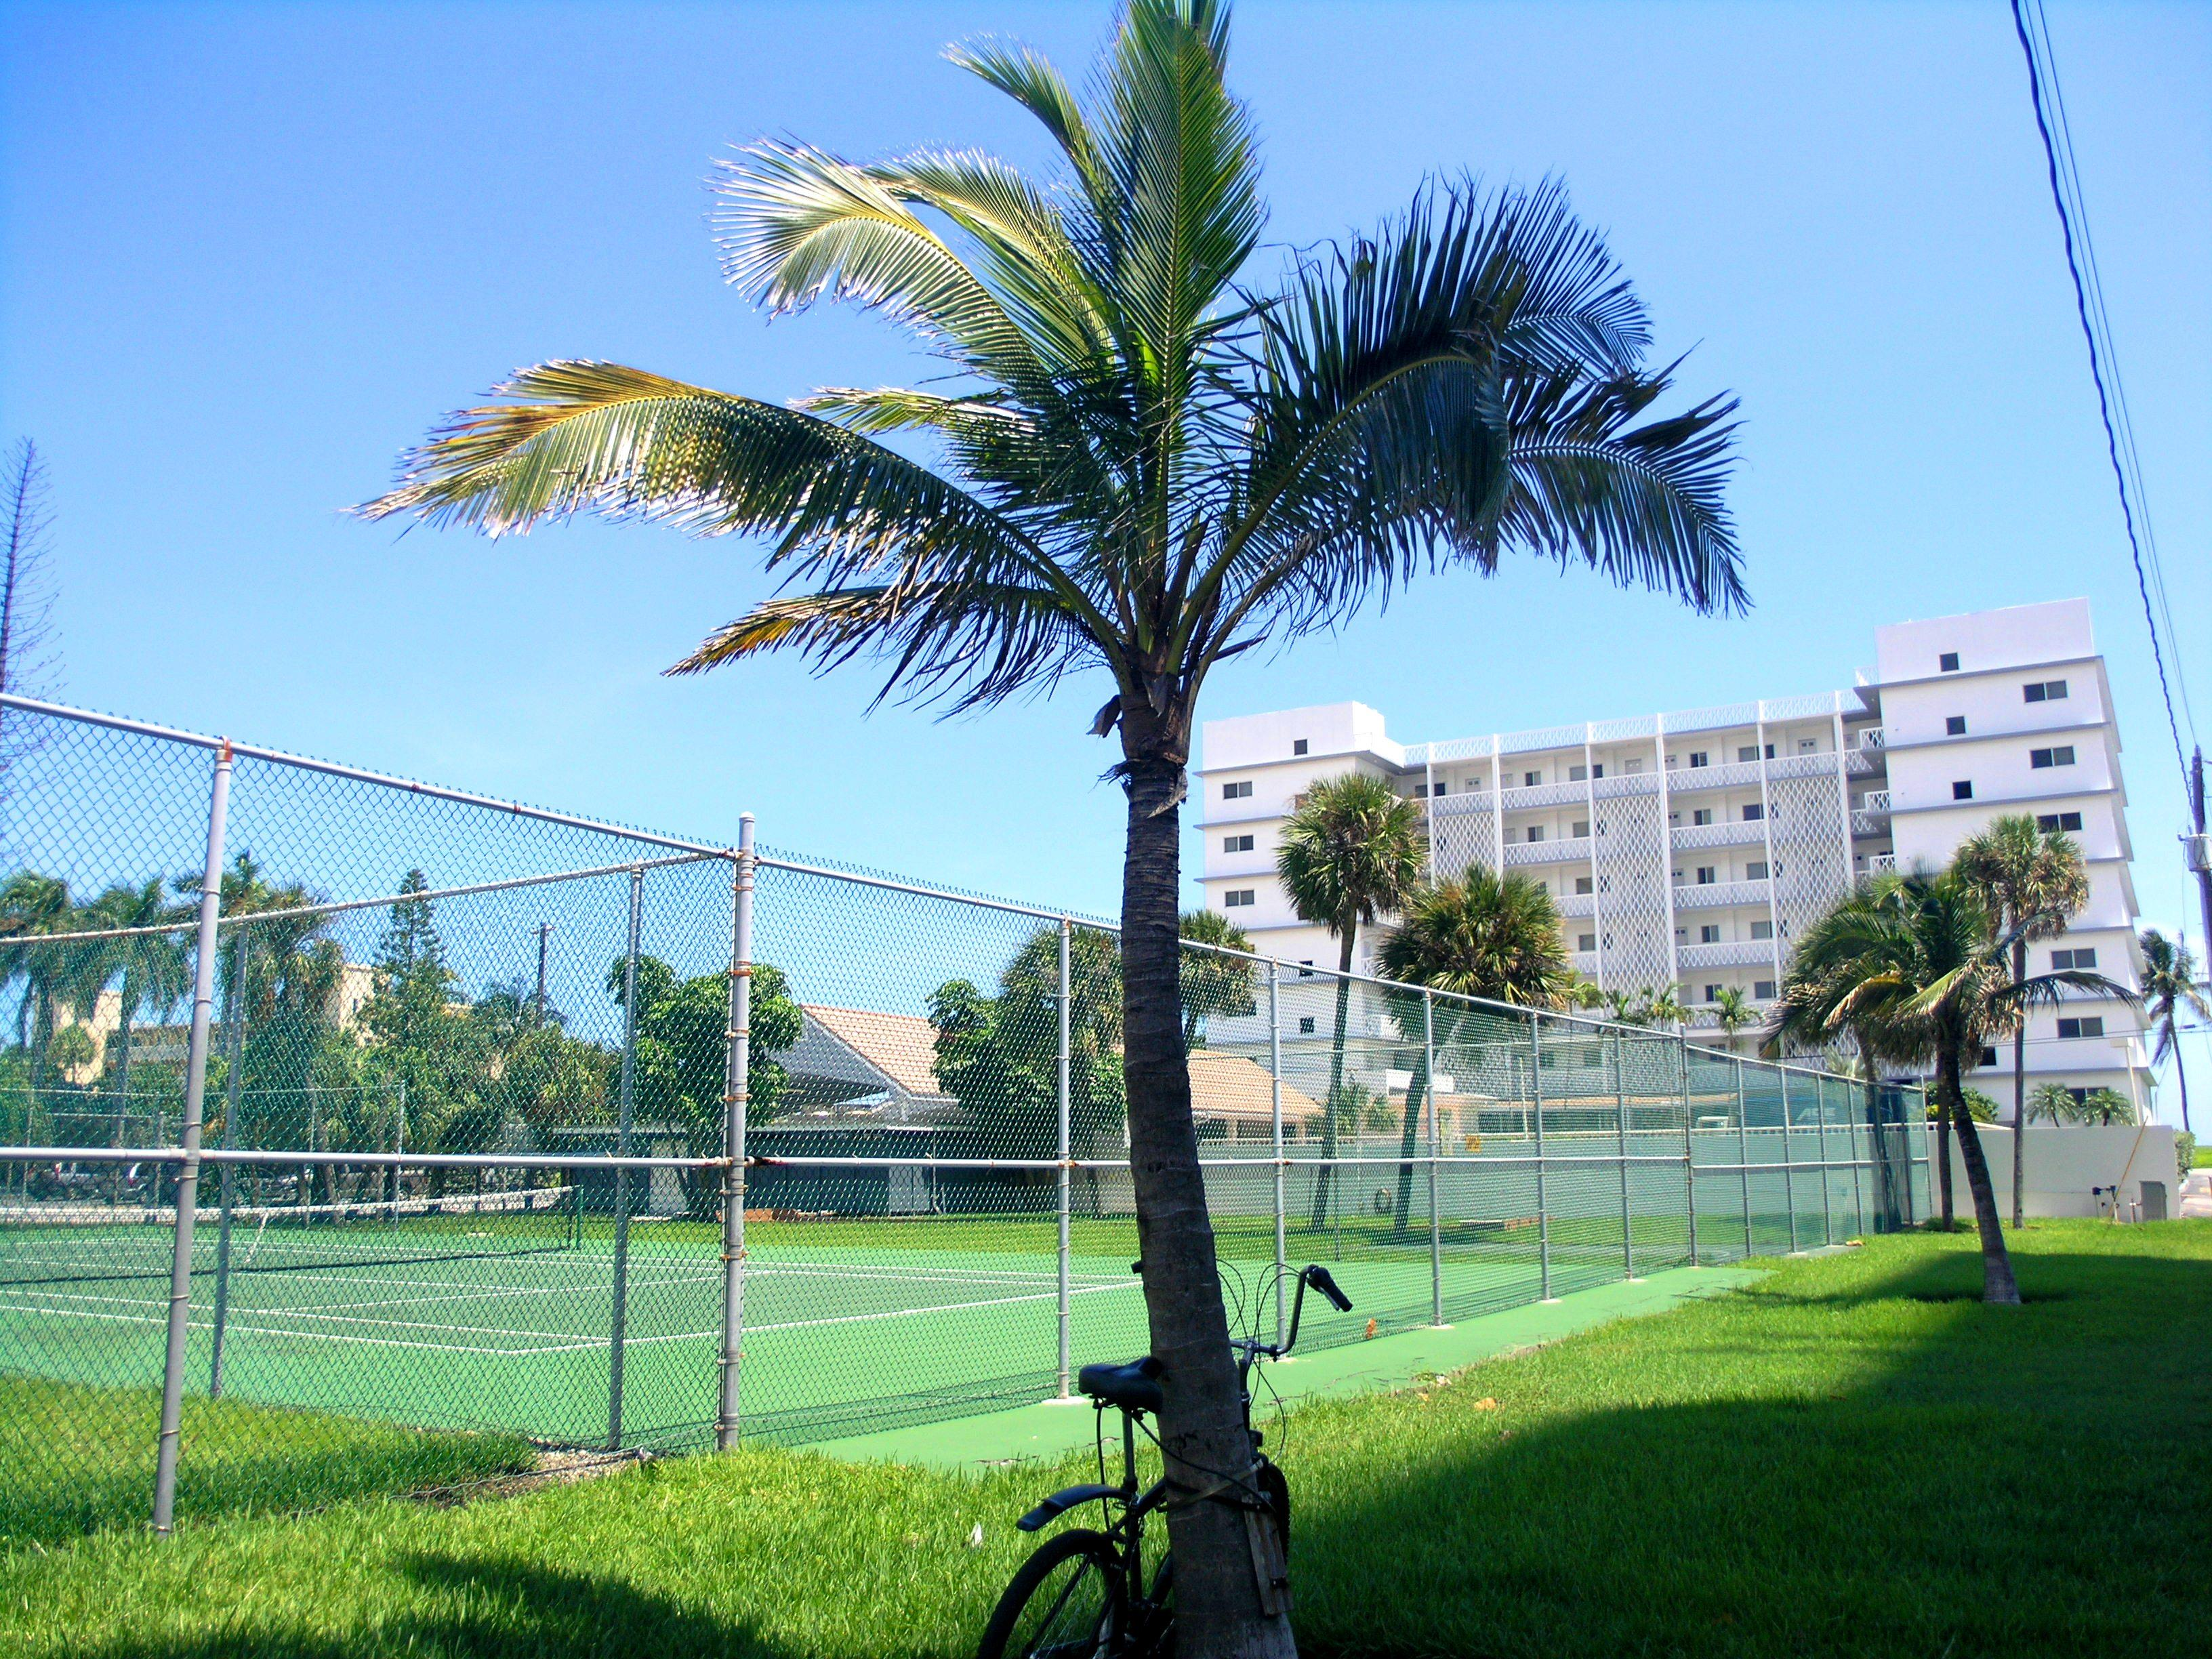 Mariposa Tennis Courts